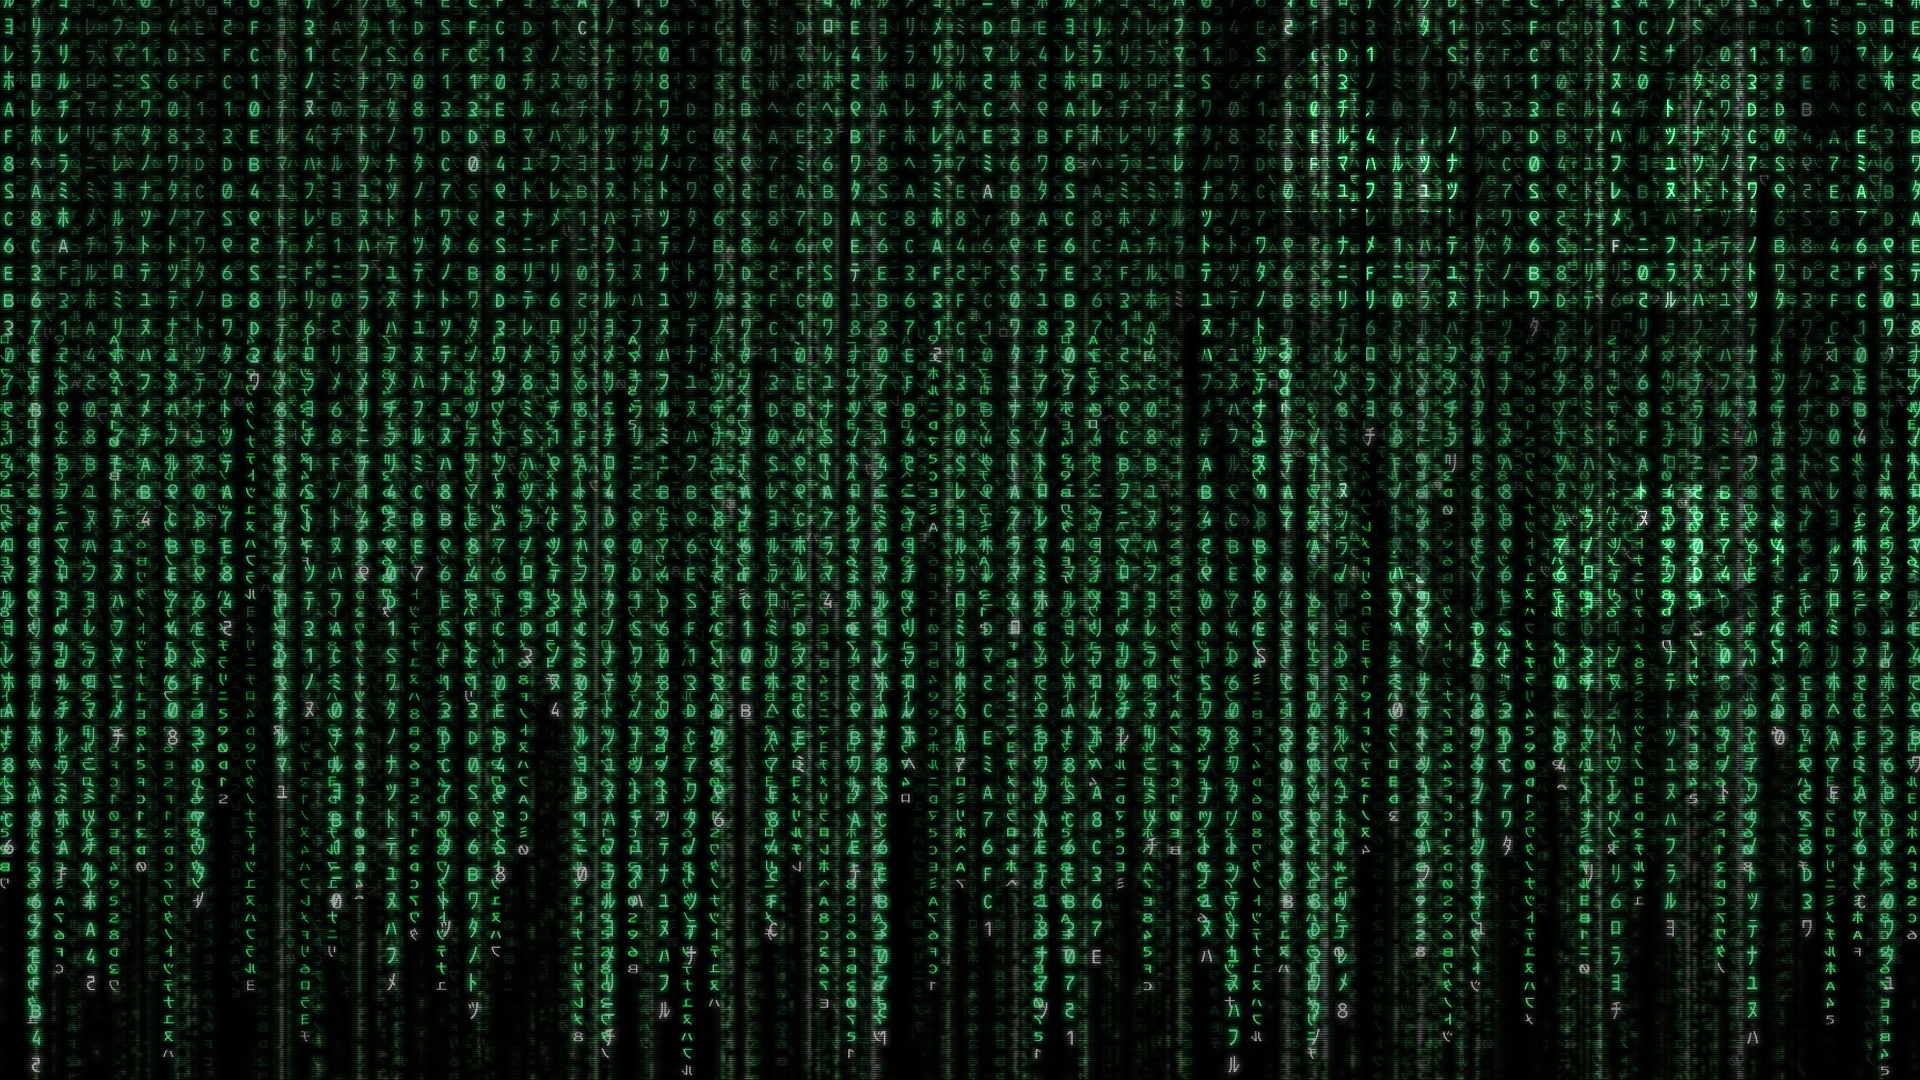 matrix numbers Awesome Face HD Wallpaper